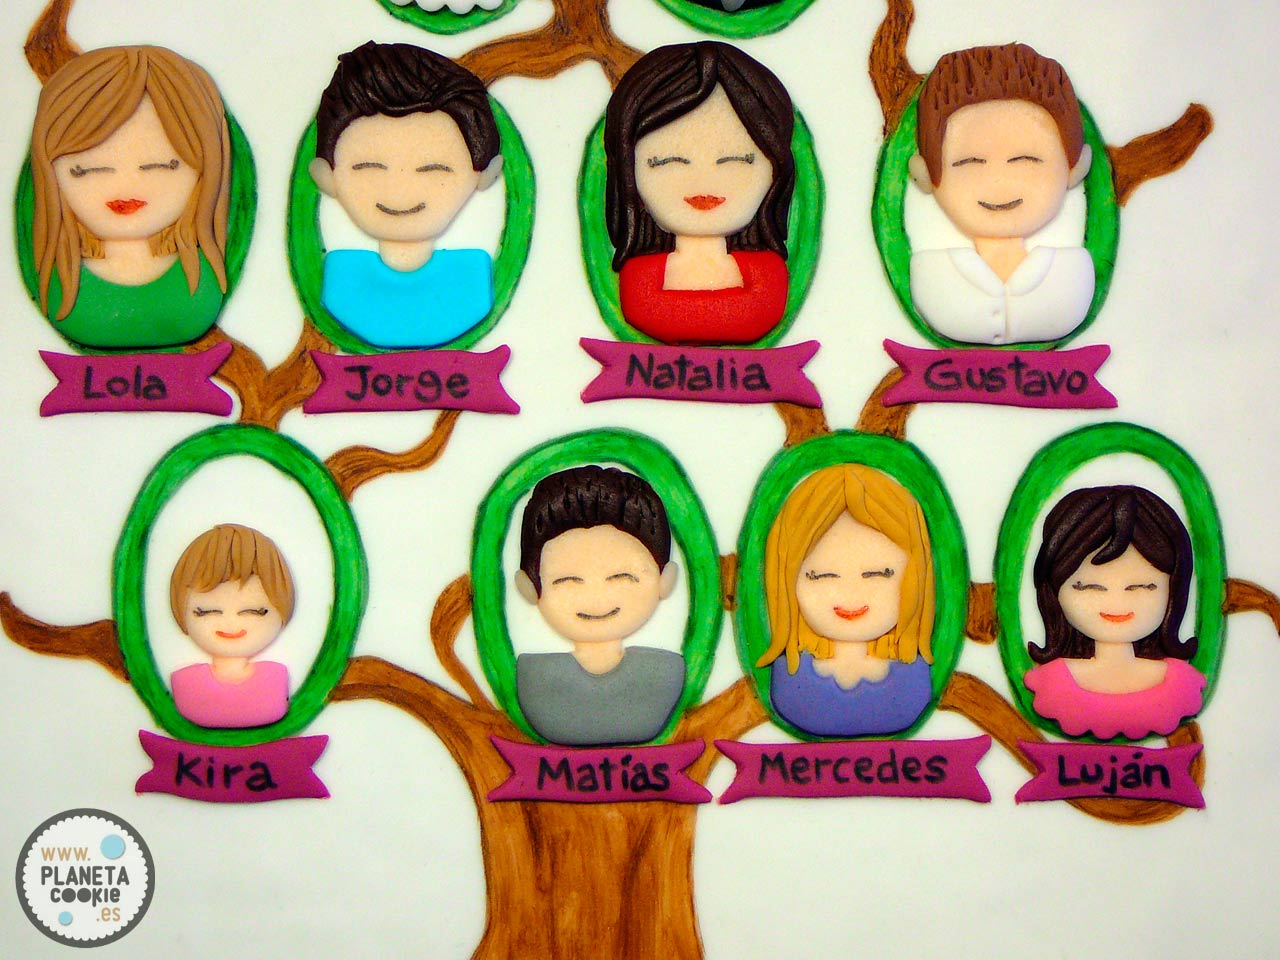 Rbol geneal gico family tree cookie planeta cookie for Mural una familia chicana